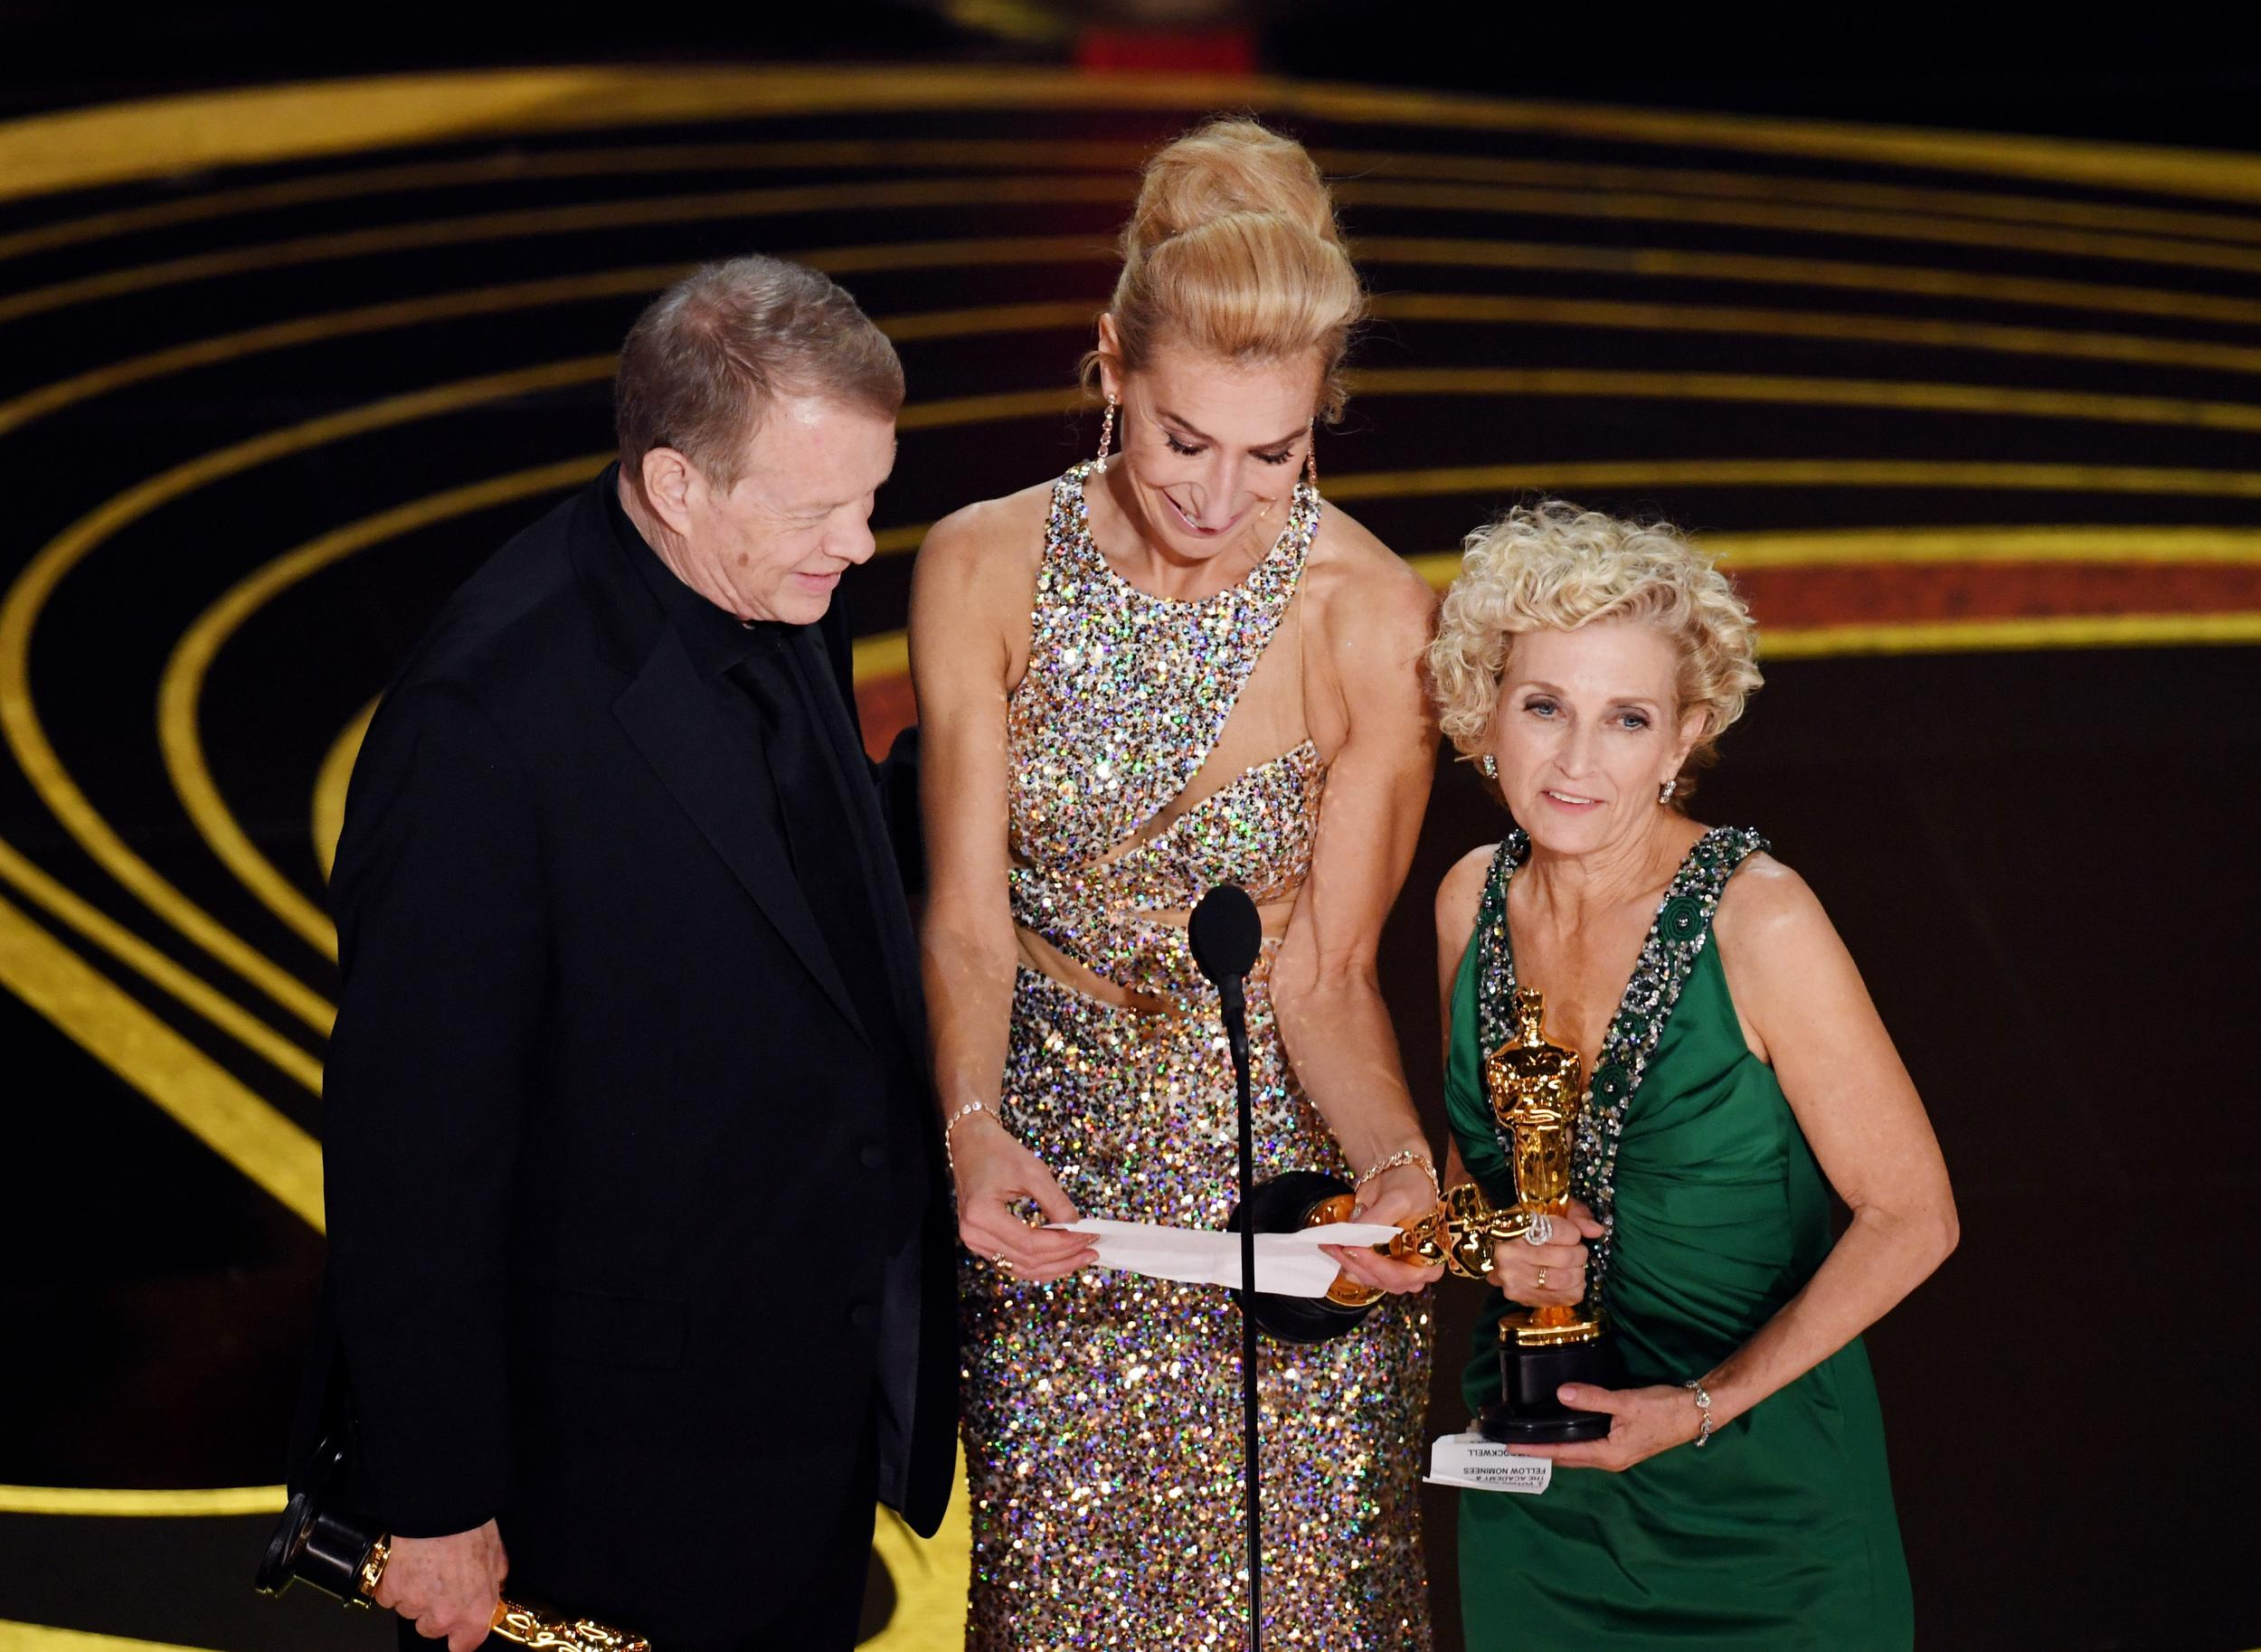 HOLLYWOOD, CALIFORNIA - FEBRUARY 24: (L-R) Greg Cannom, Kate Biscoe, and Patricia Dehaney accept the Makeup and Hairstyling award for 'Vice' onstage during the 91st Annual Academy Awards at Dolby Theatre on February 24, 2019 in Hollywood, California. (Photo by Kevin Winter/Getty Images)